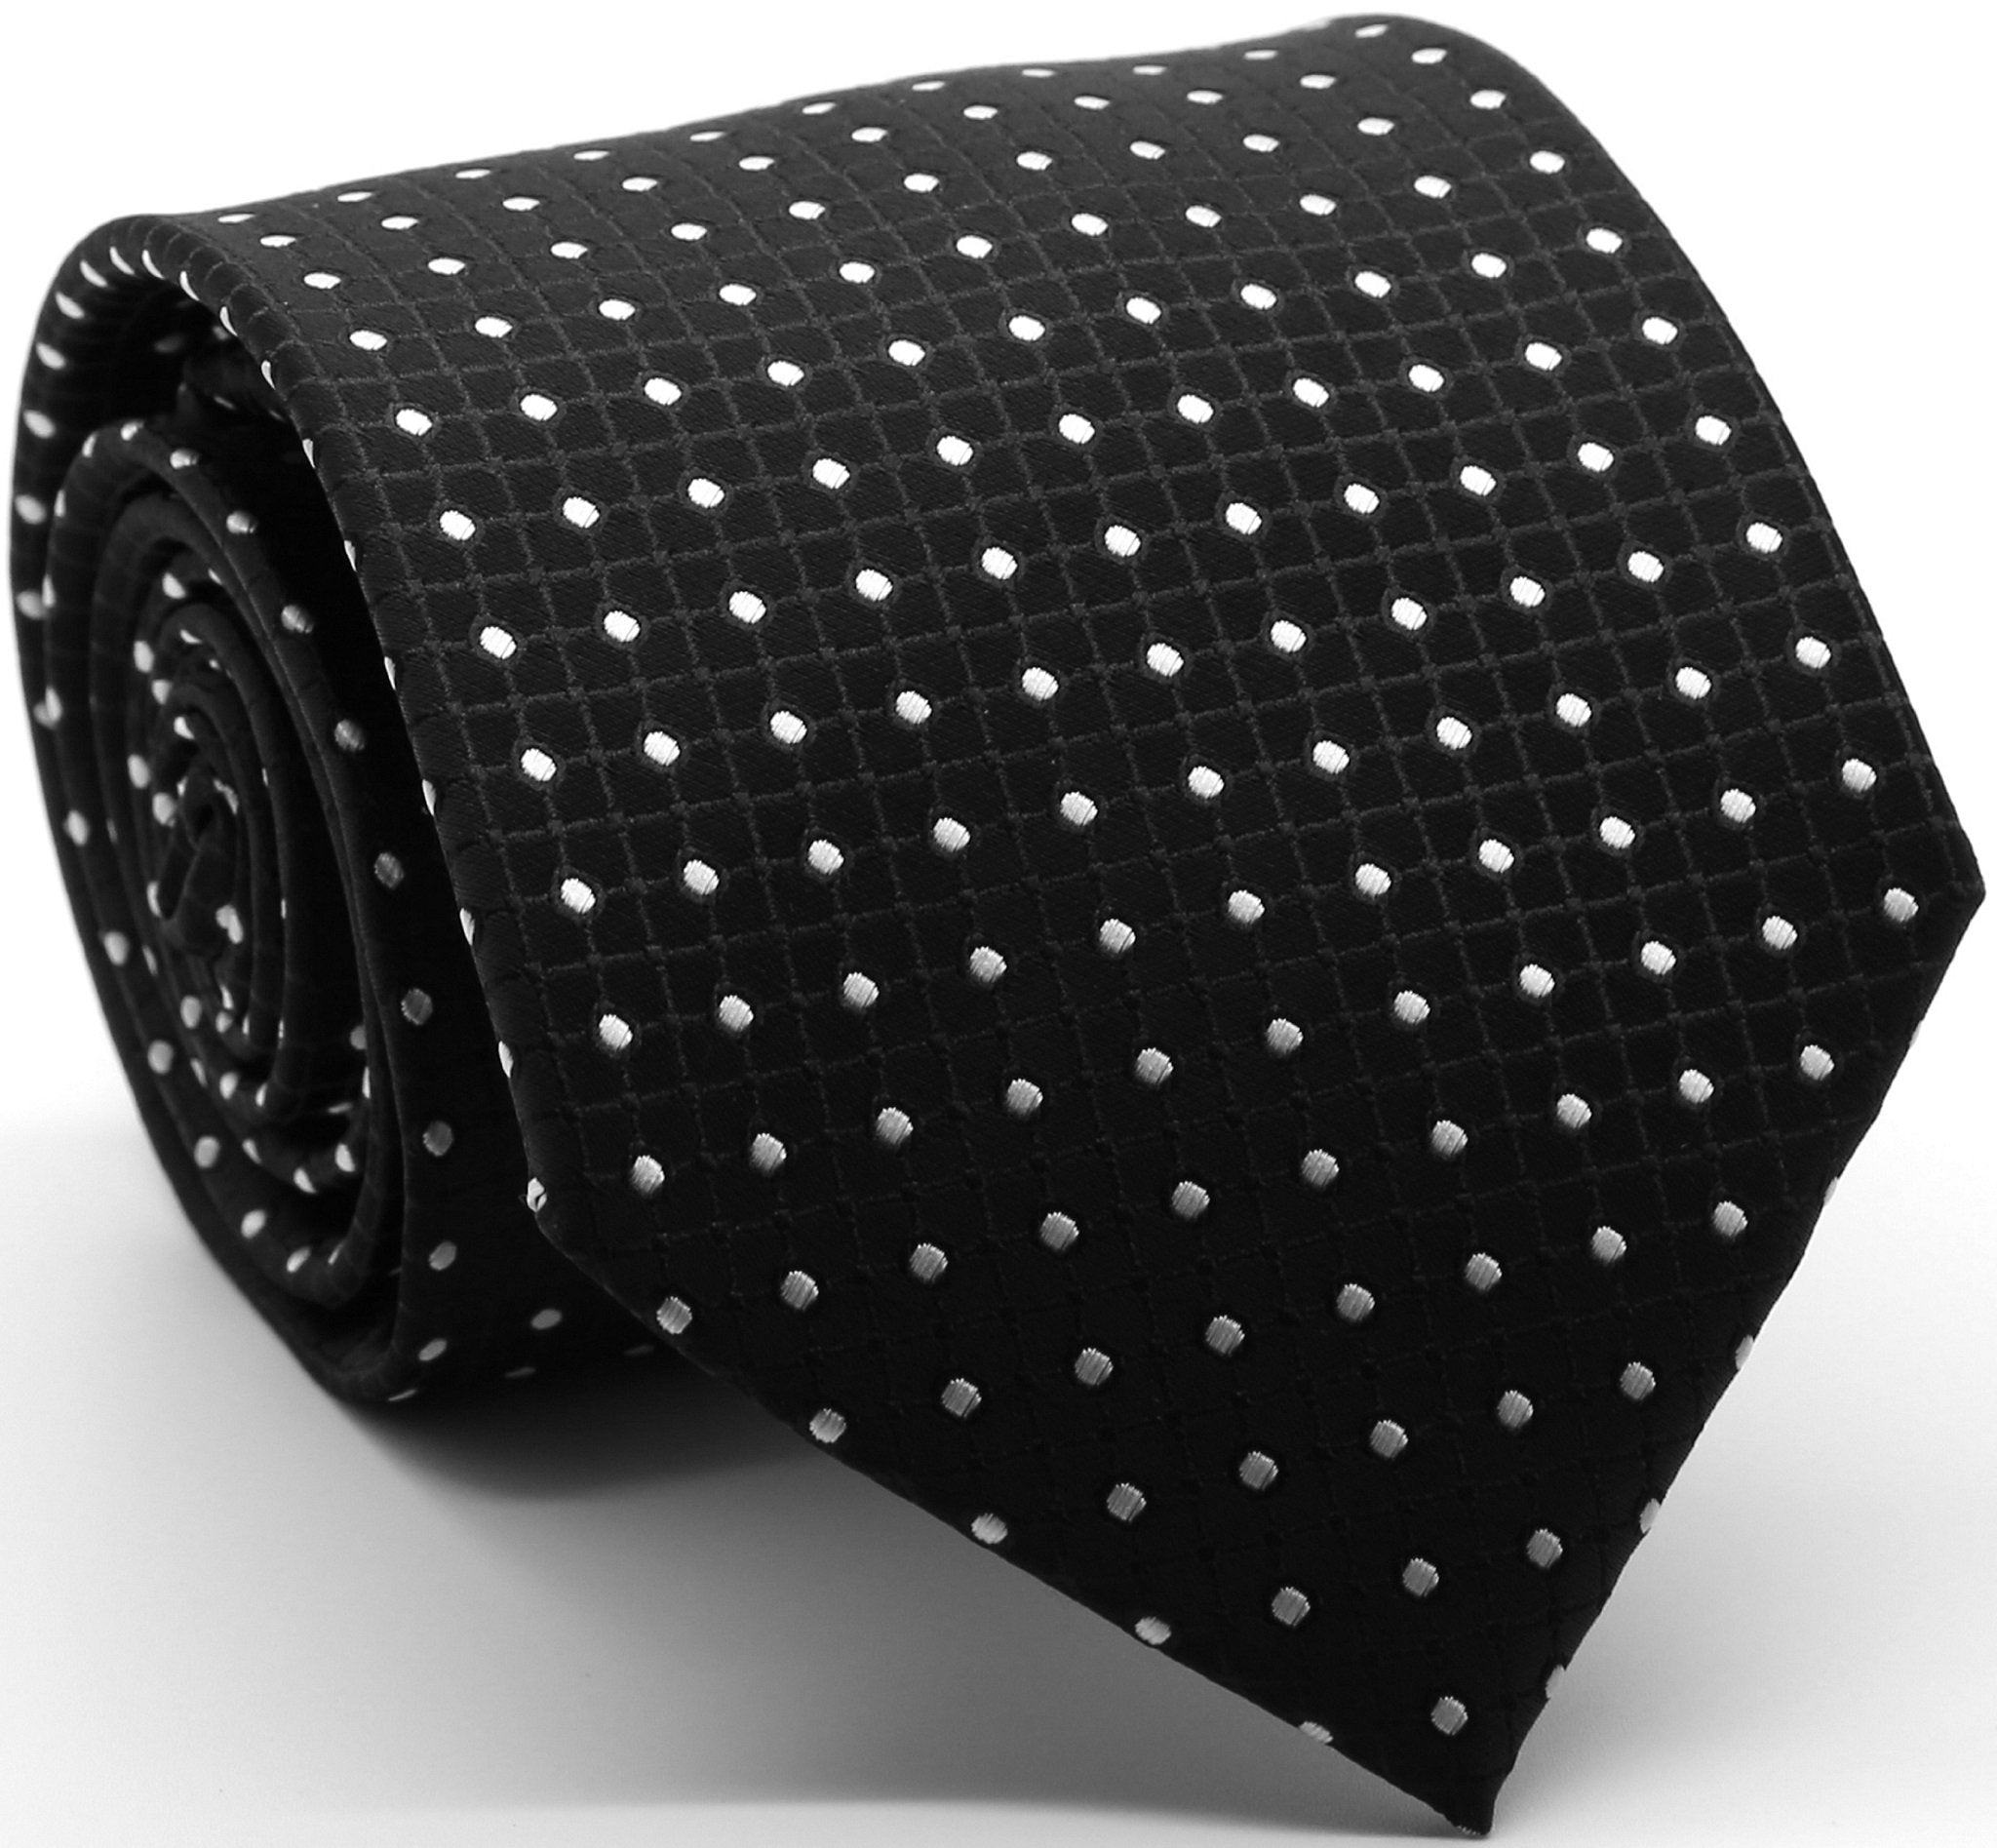 Mens Dads Classic Black Geometric Pattern Business Casual Necktie & Hanky Set UO-4 - Giorgio's Menswear